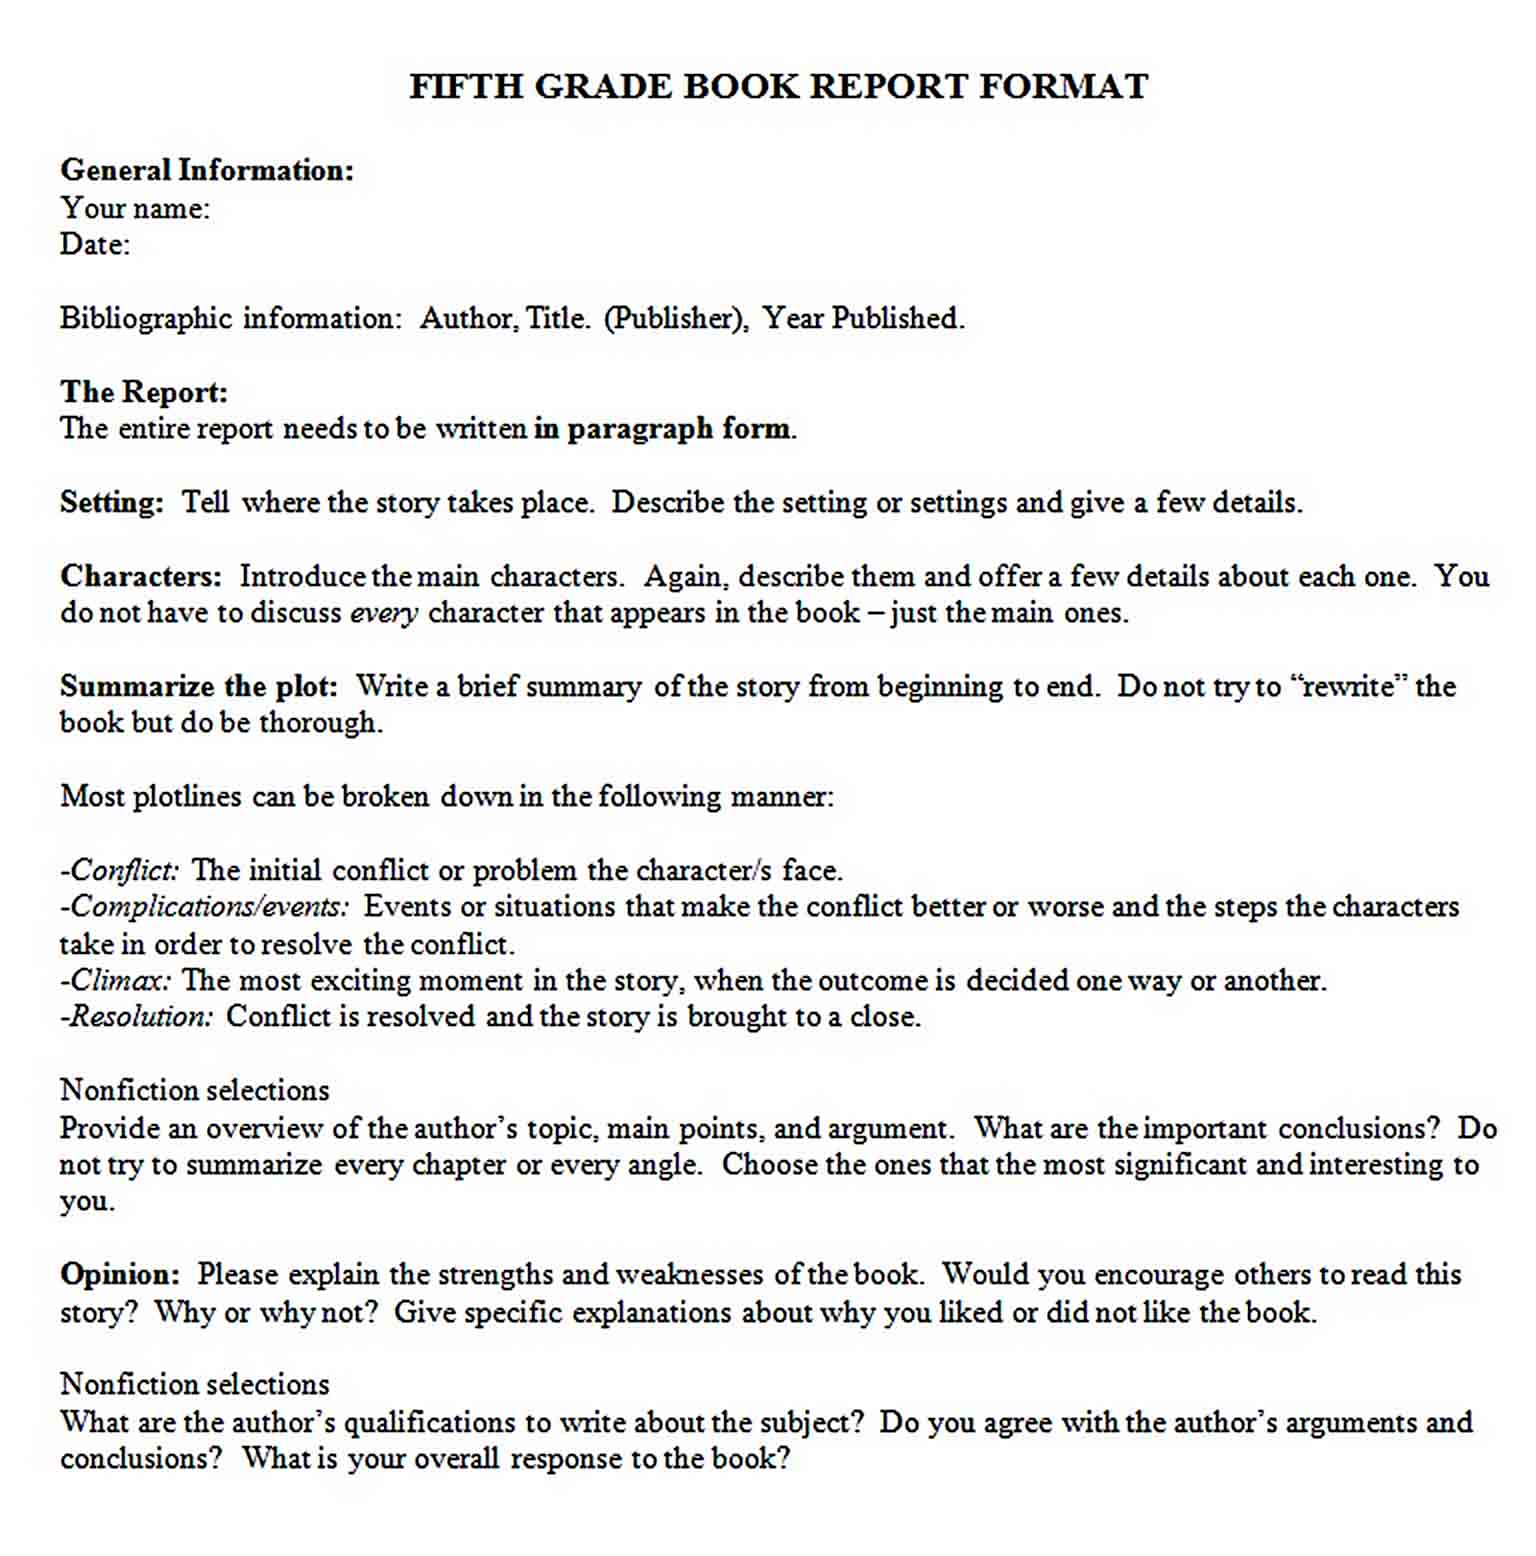 Templates 5th Grade Book Report Format